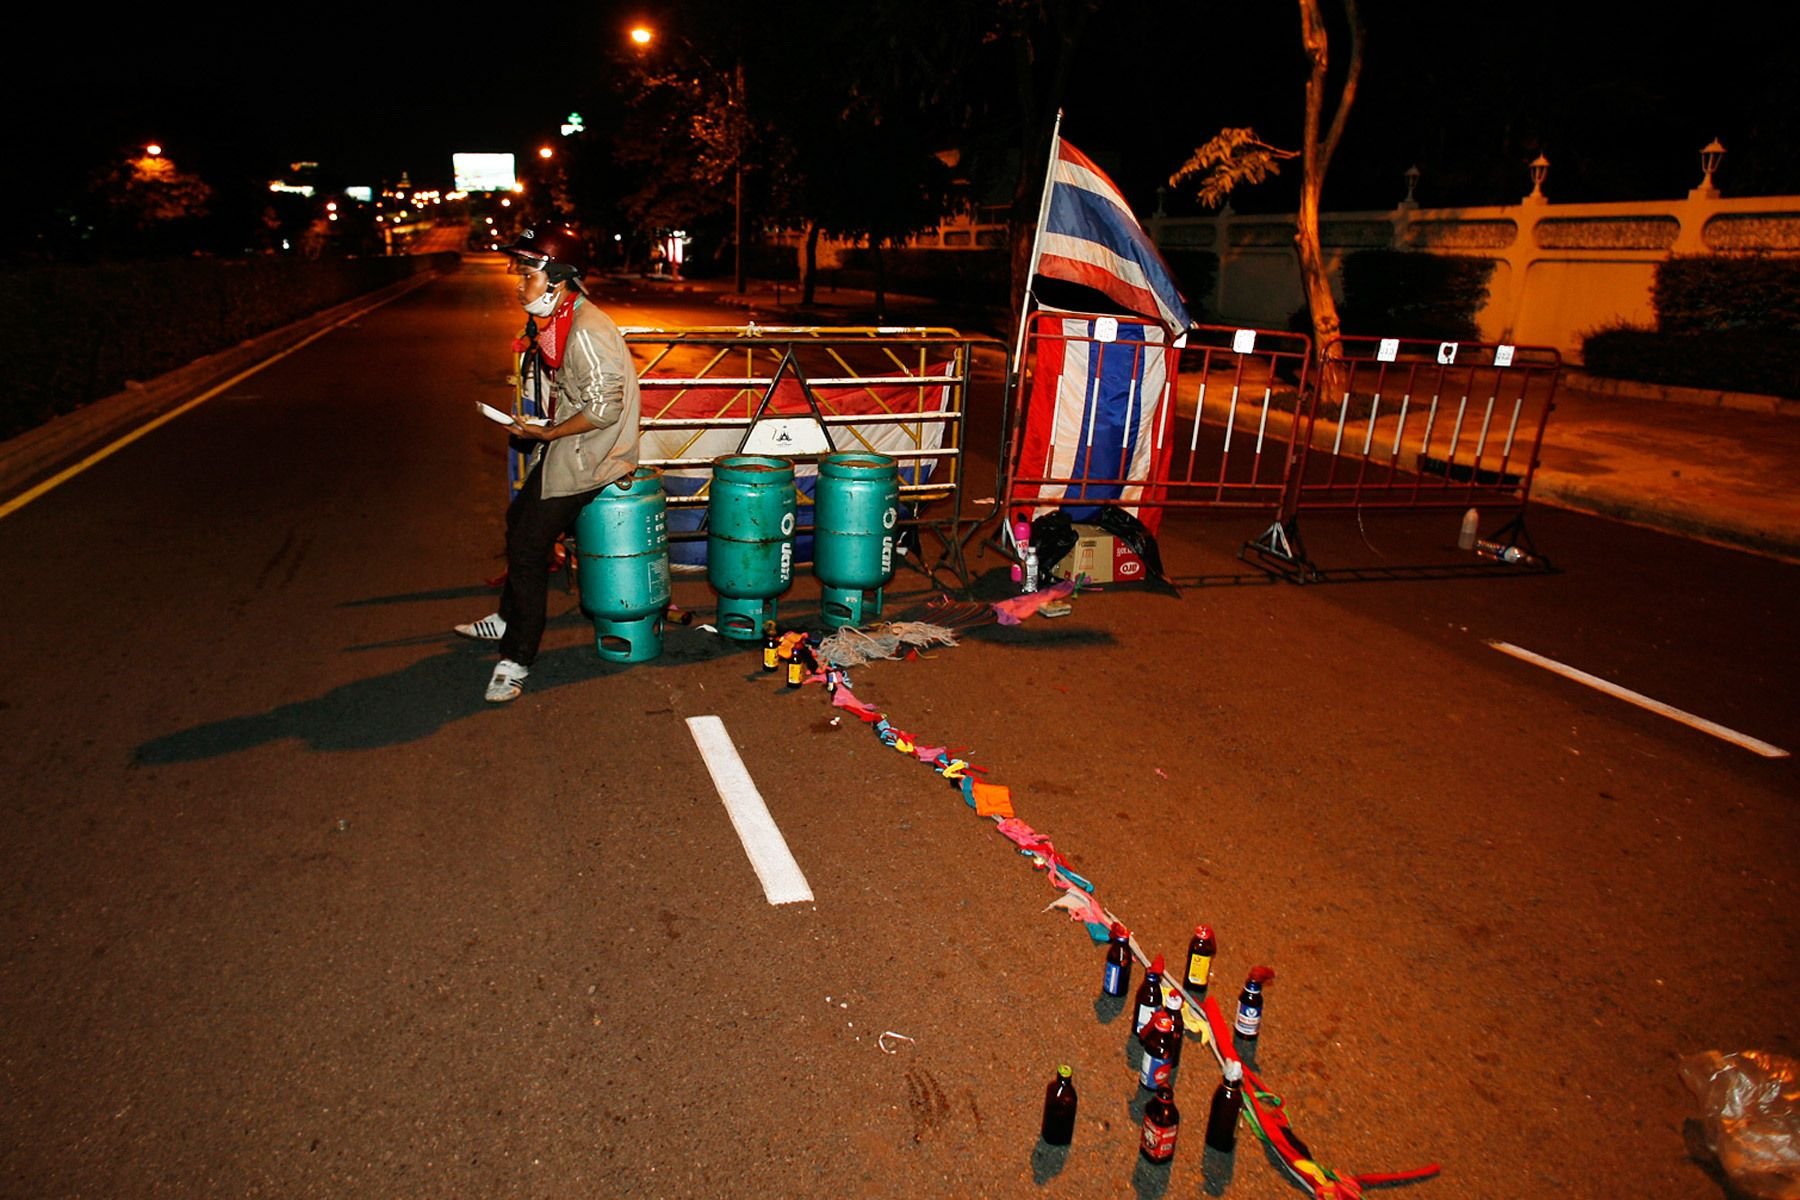 A member of the anti-government United Front for Democracy against Dictatorship (UDD) sits at a roadblock with a reserve of petrol bombs and gas bottles in Bangkok.